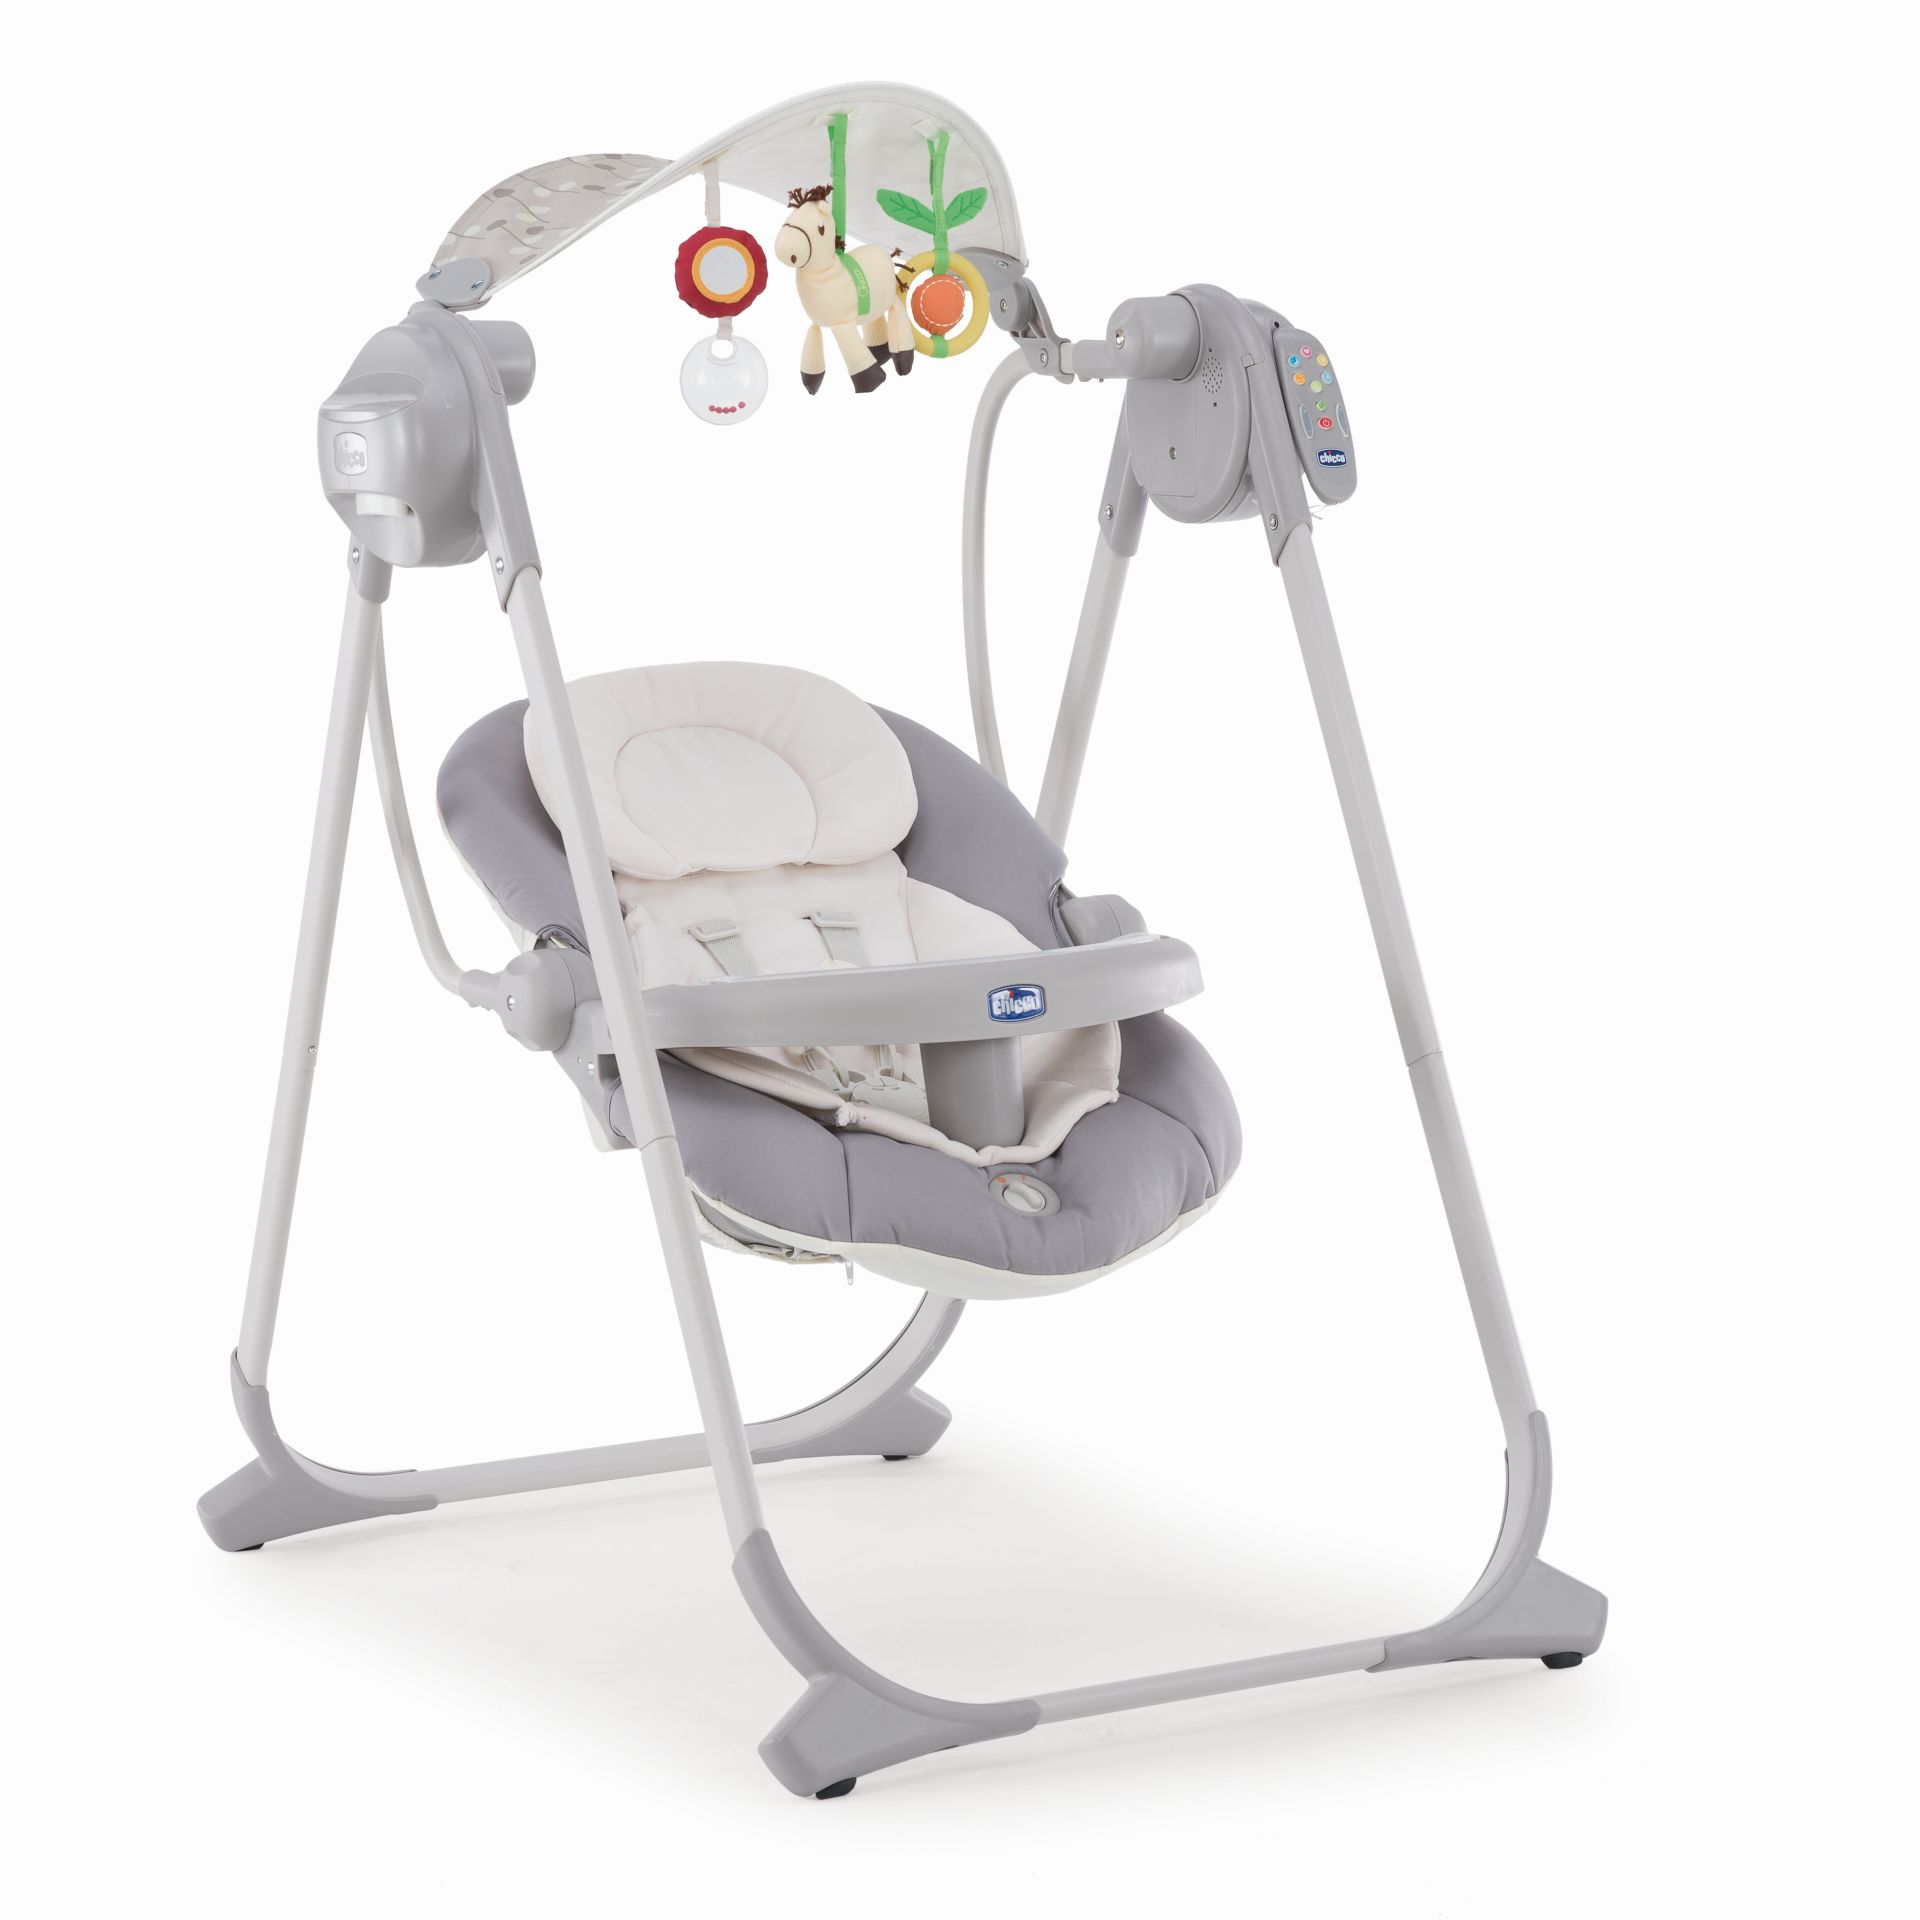 Chicco Baby Swing Polly Swing Up 2020 Silver Buy At Kidsroom